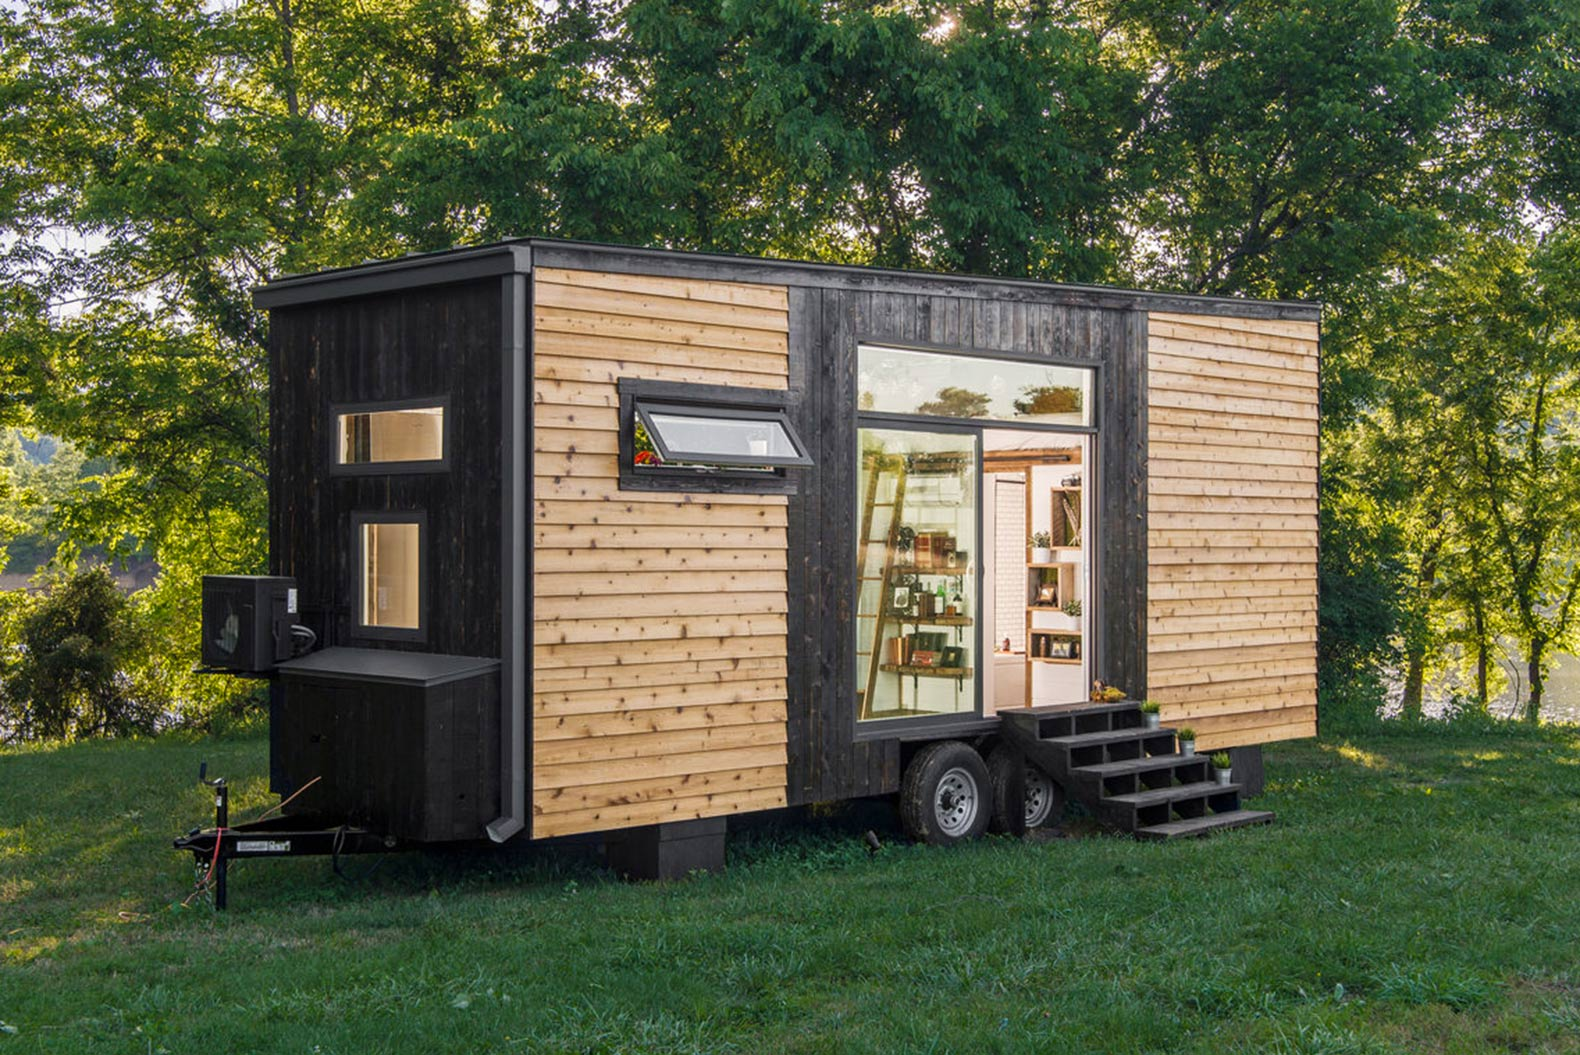 Groovy Tiny Home Clad In Burnt Wood Packs A Ton Of Luxury Into Just Download Free Architecture Designs Sospemadebymaigaardcom